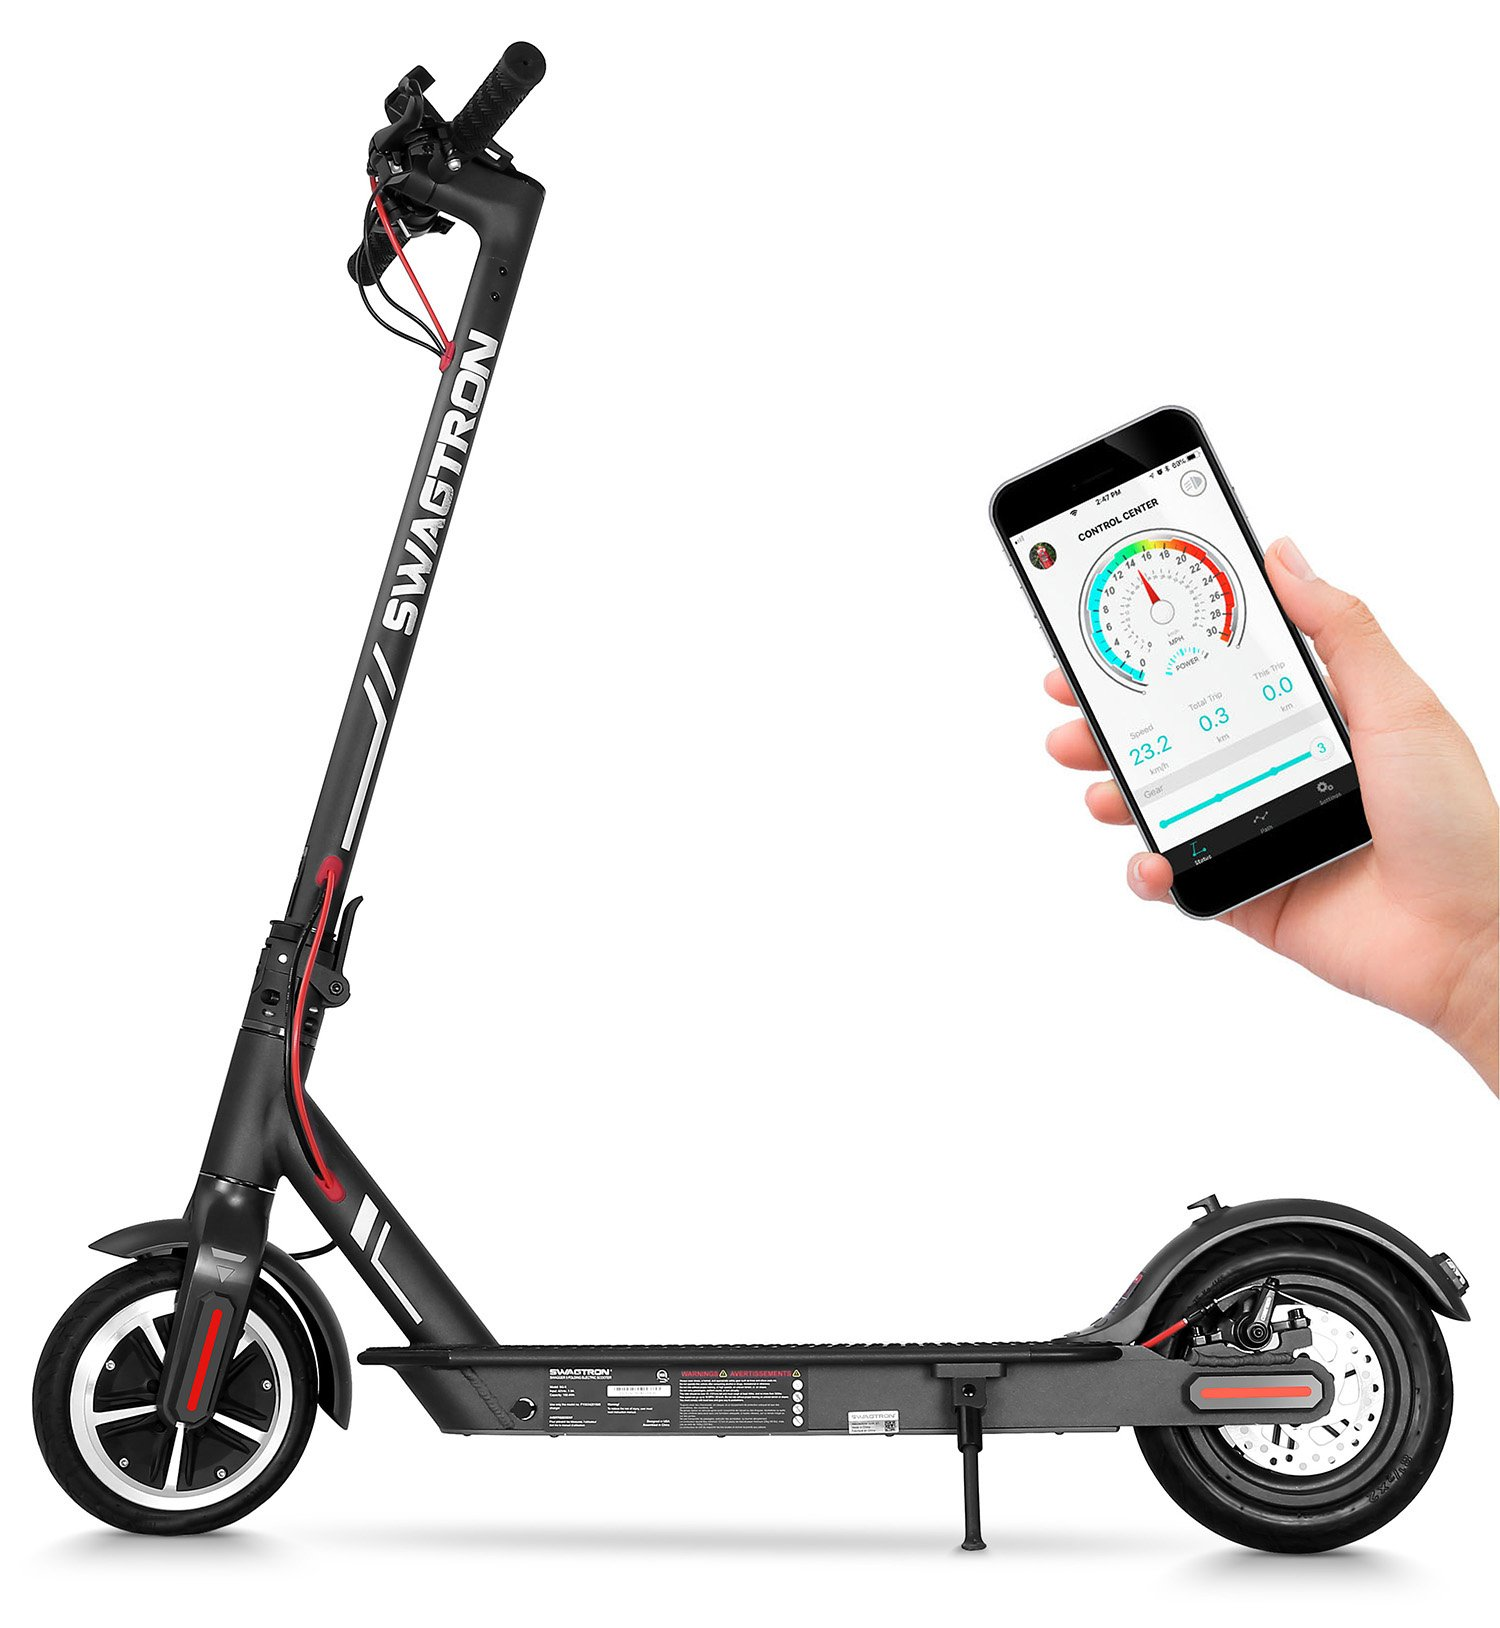 Swagtron High Speed Electric Scooter with 8.5'' Cushioned Tires, Cruise Control and 1-Step Portable Folding - Swagger 5 by Swagtron (Image #1)